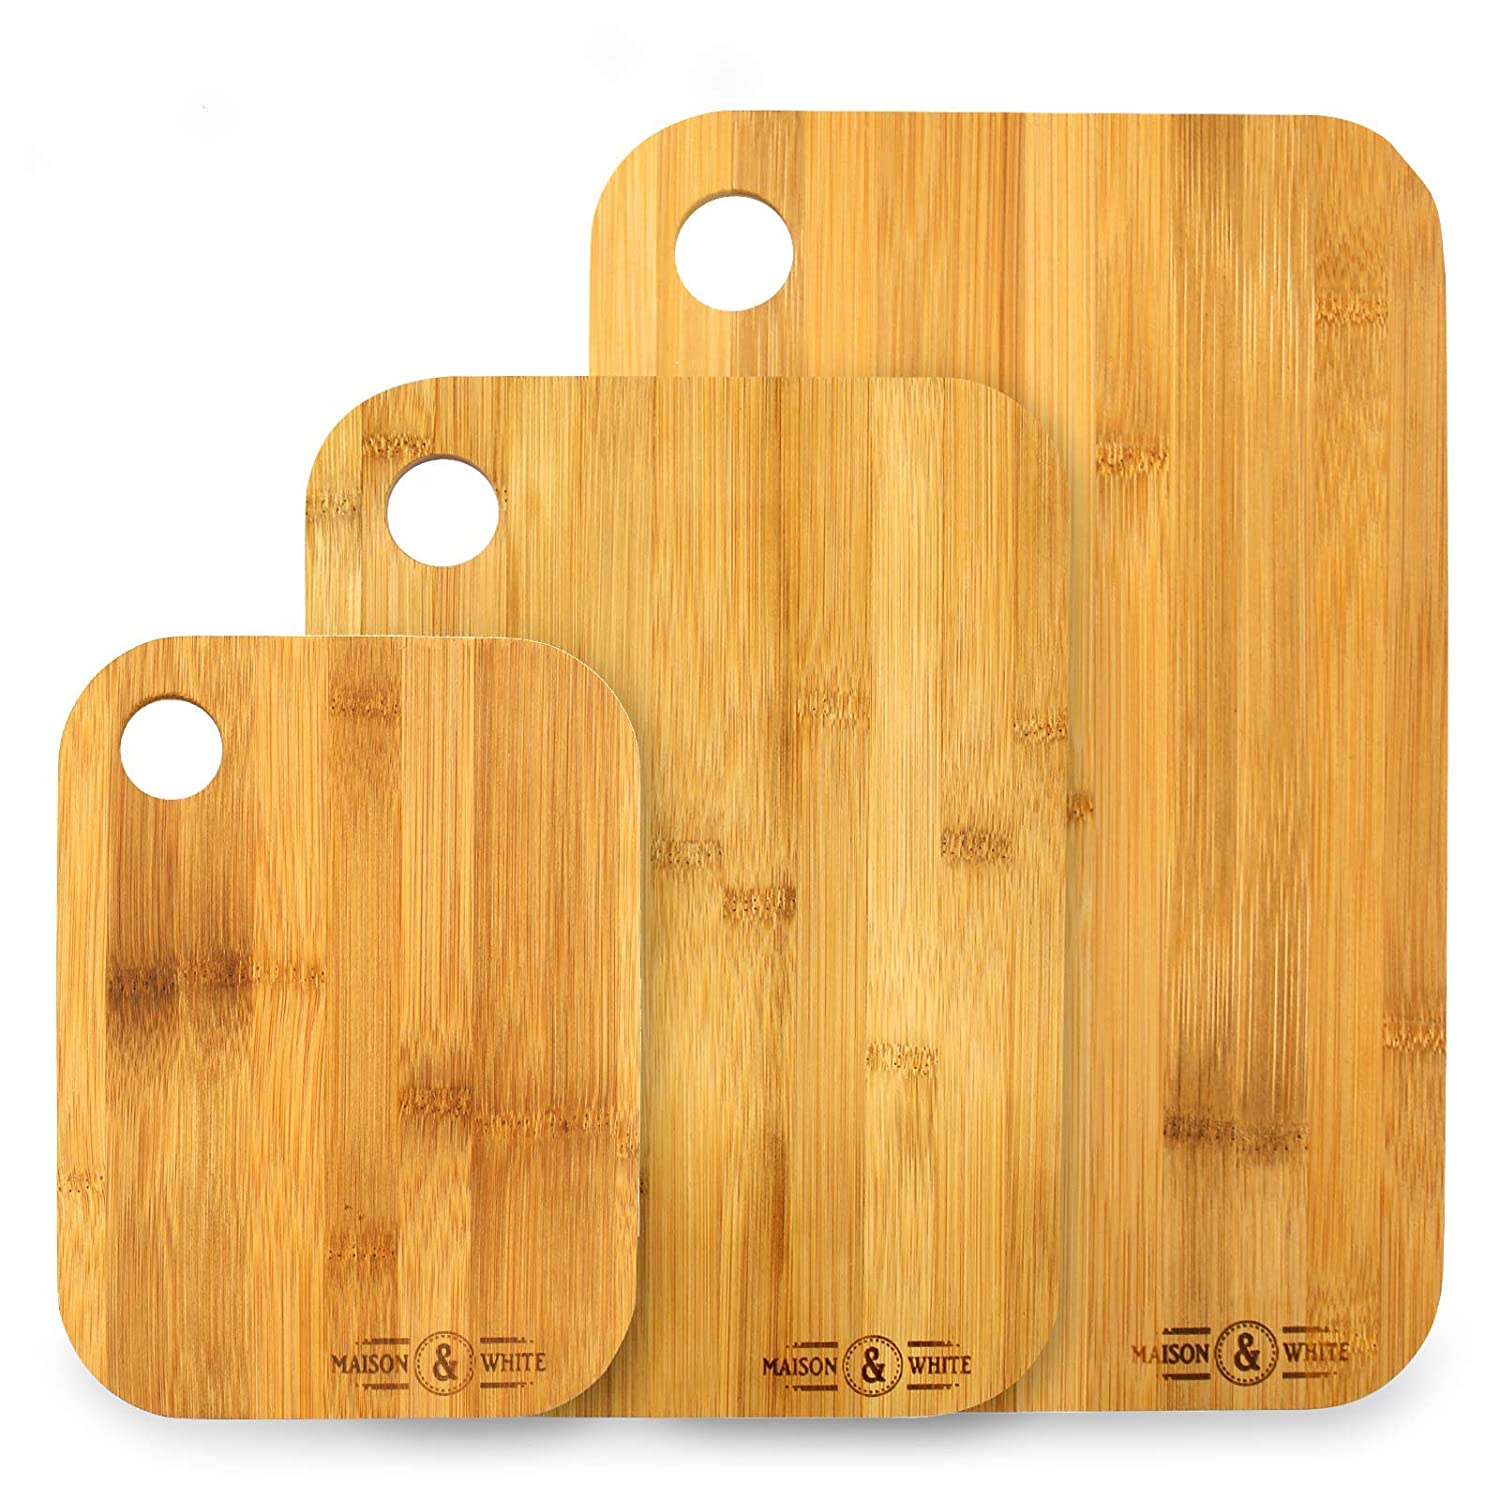 3 bamboo chopping board set x3 different size kitchen set wooden cutting board suitable for all food types 100 natural bamboo mw amazon co uk